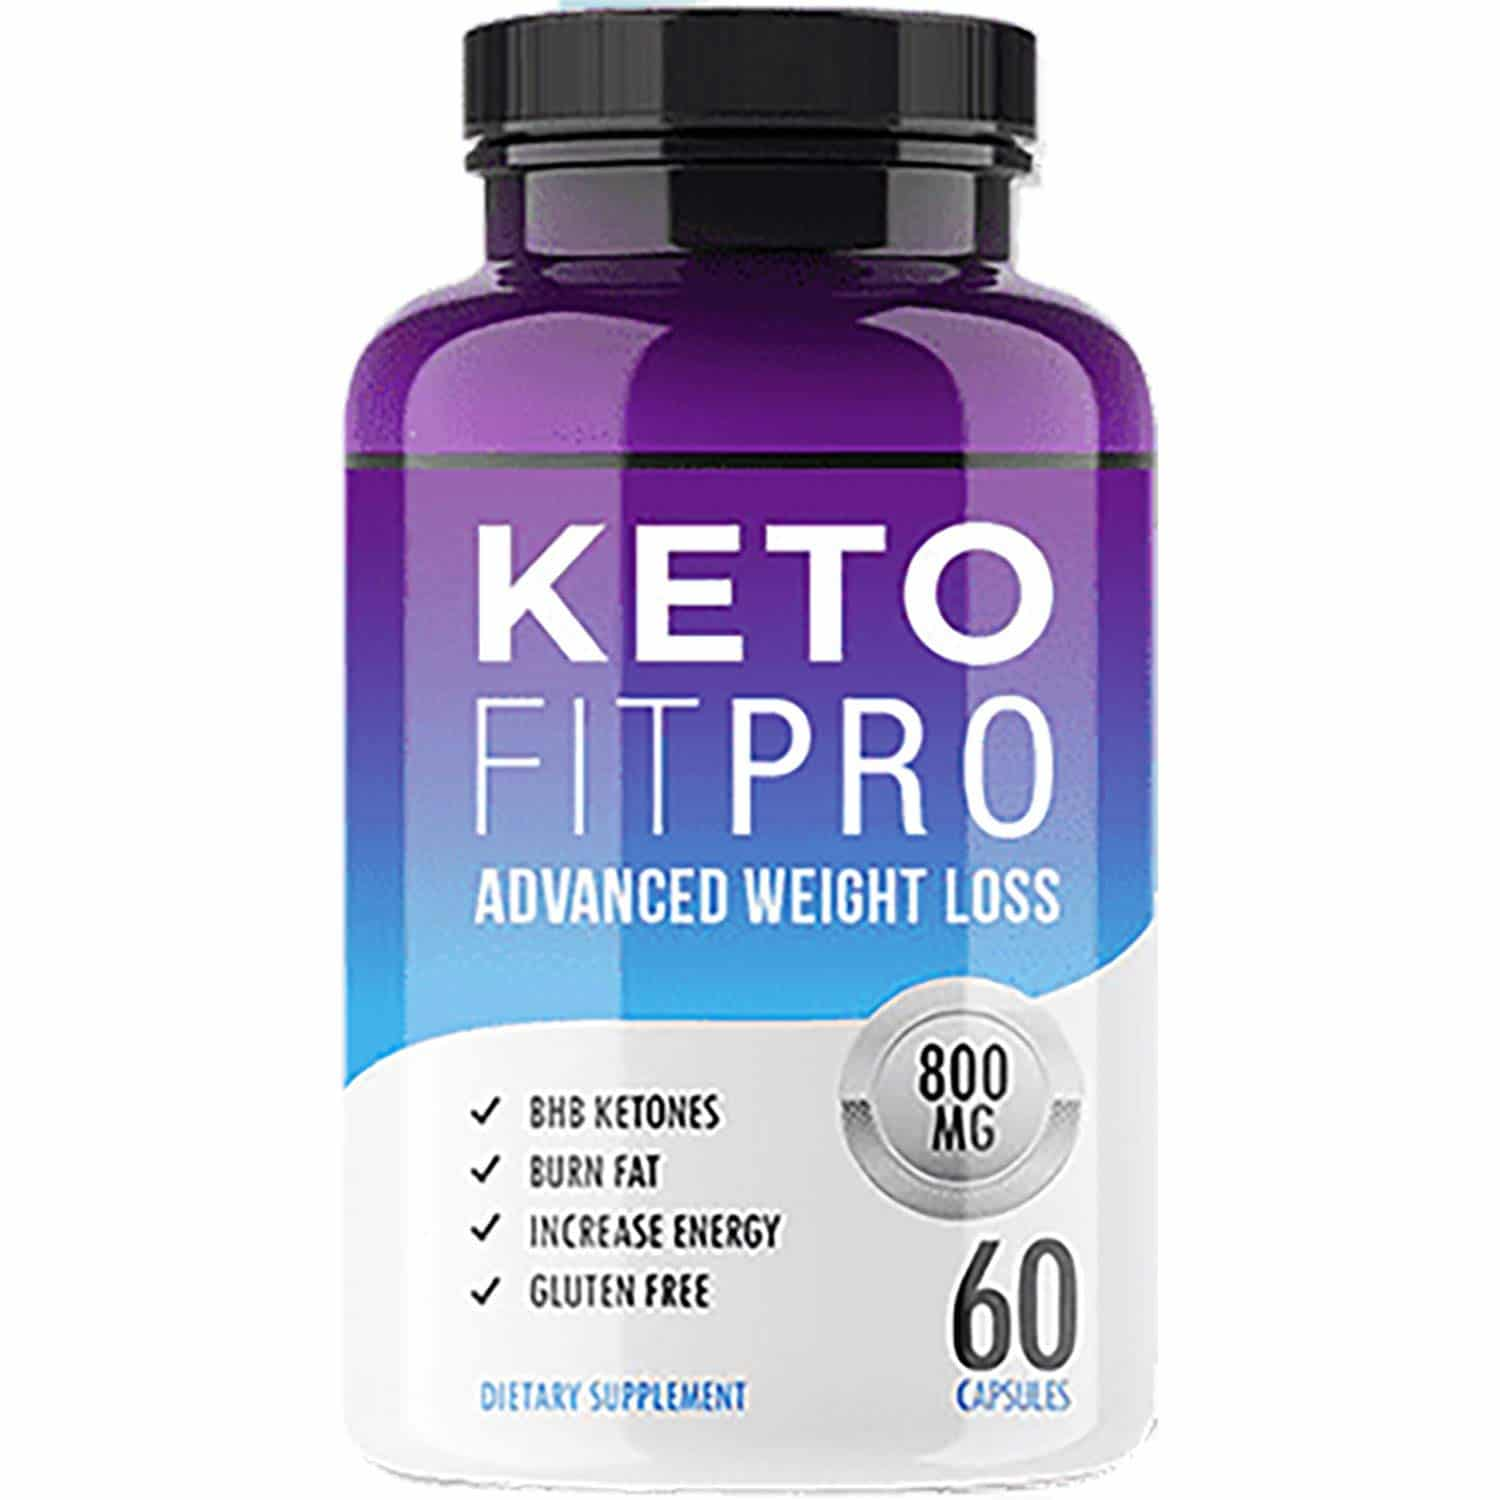 Keto Fit Pro what is it?